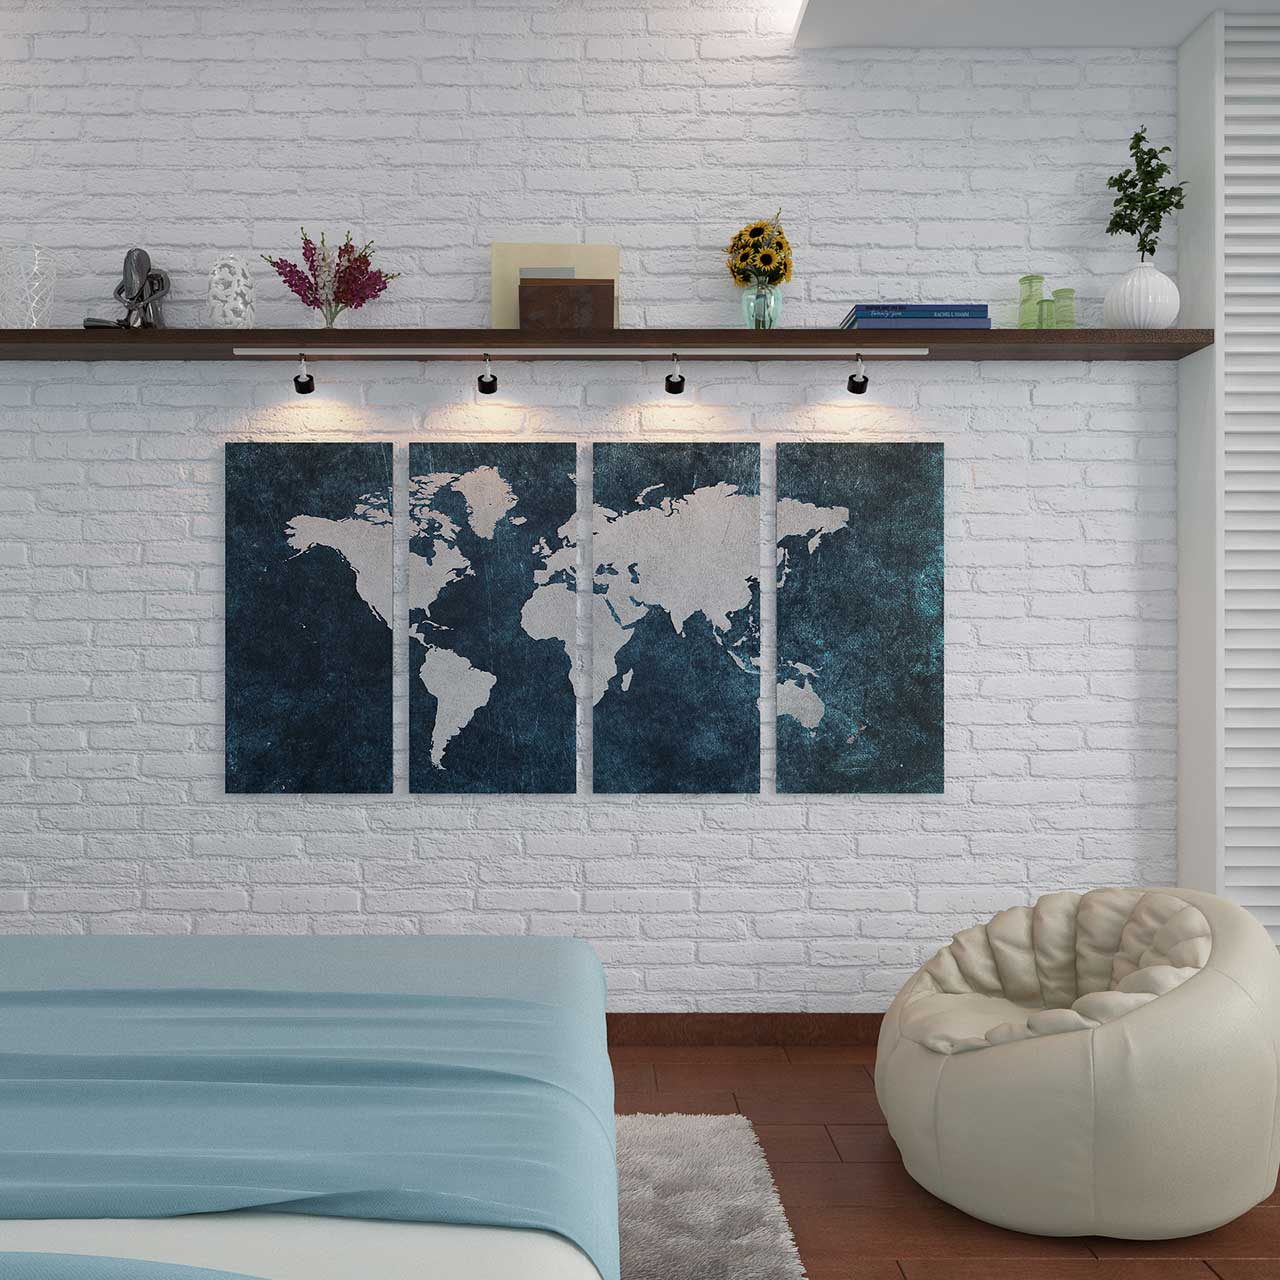 Bedroom design check-list: map 3D wall painting design brings in fresh energy to a modern bedroom desig